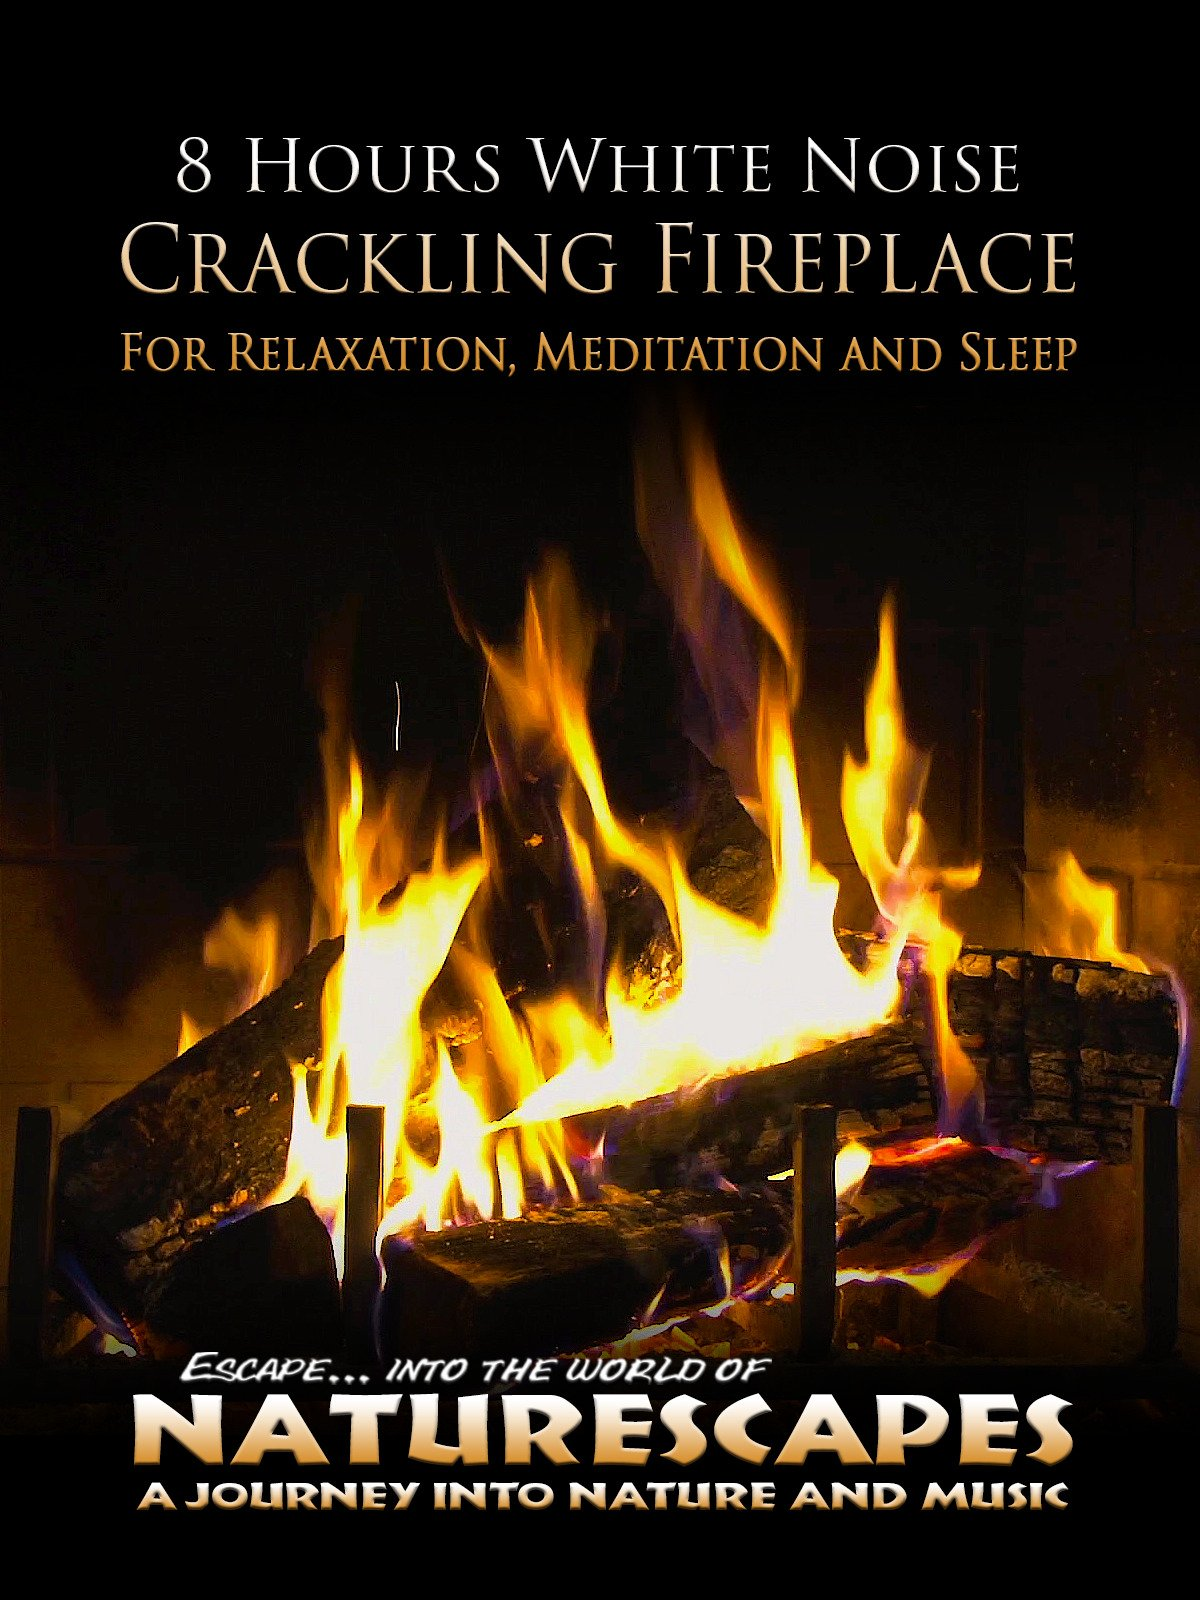 8 Hours White Noise Crackling Fireplace for Relaxation, Meditation and Sleep